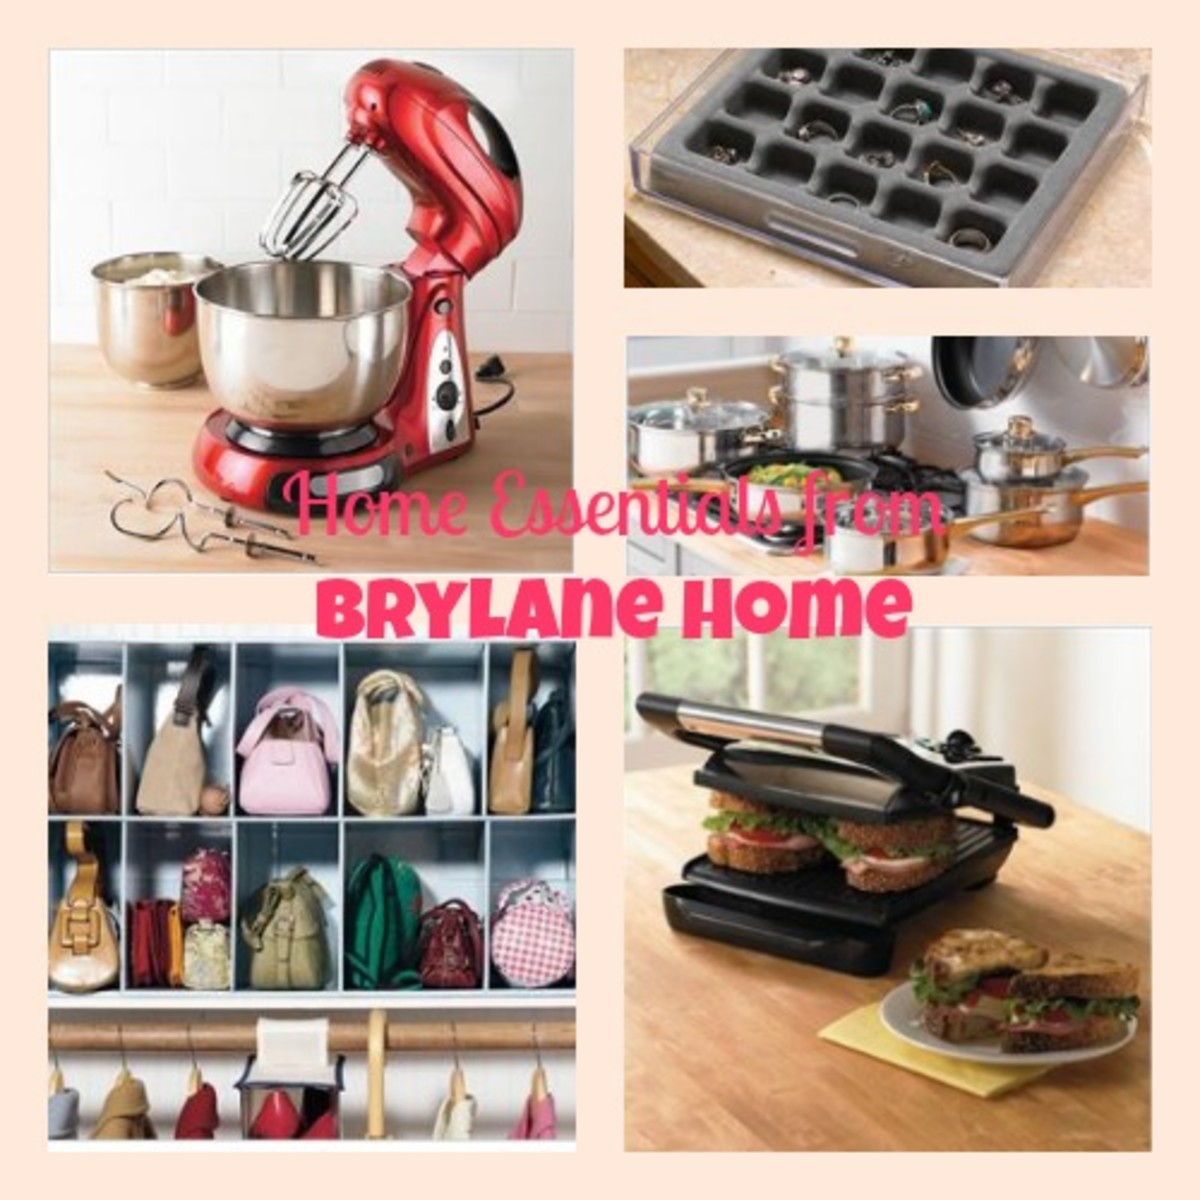 brylane home, momtrends, brylane home review